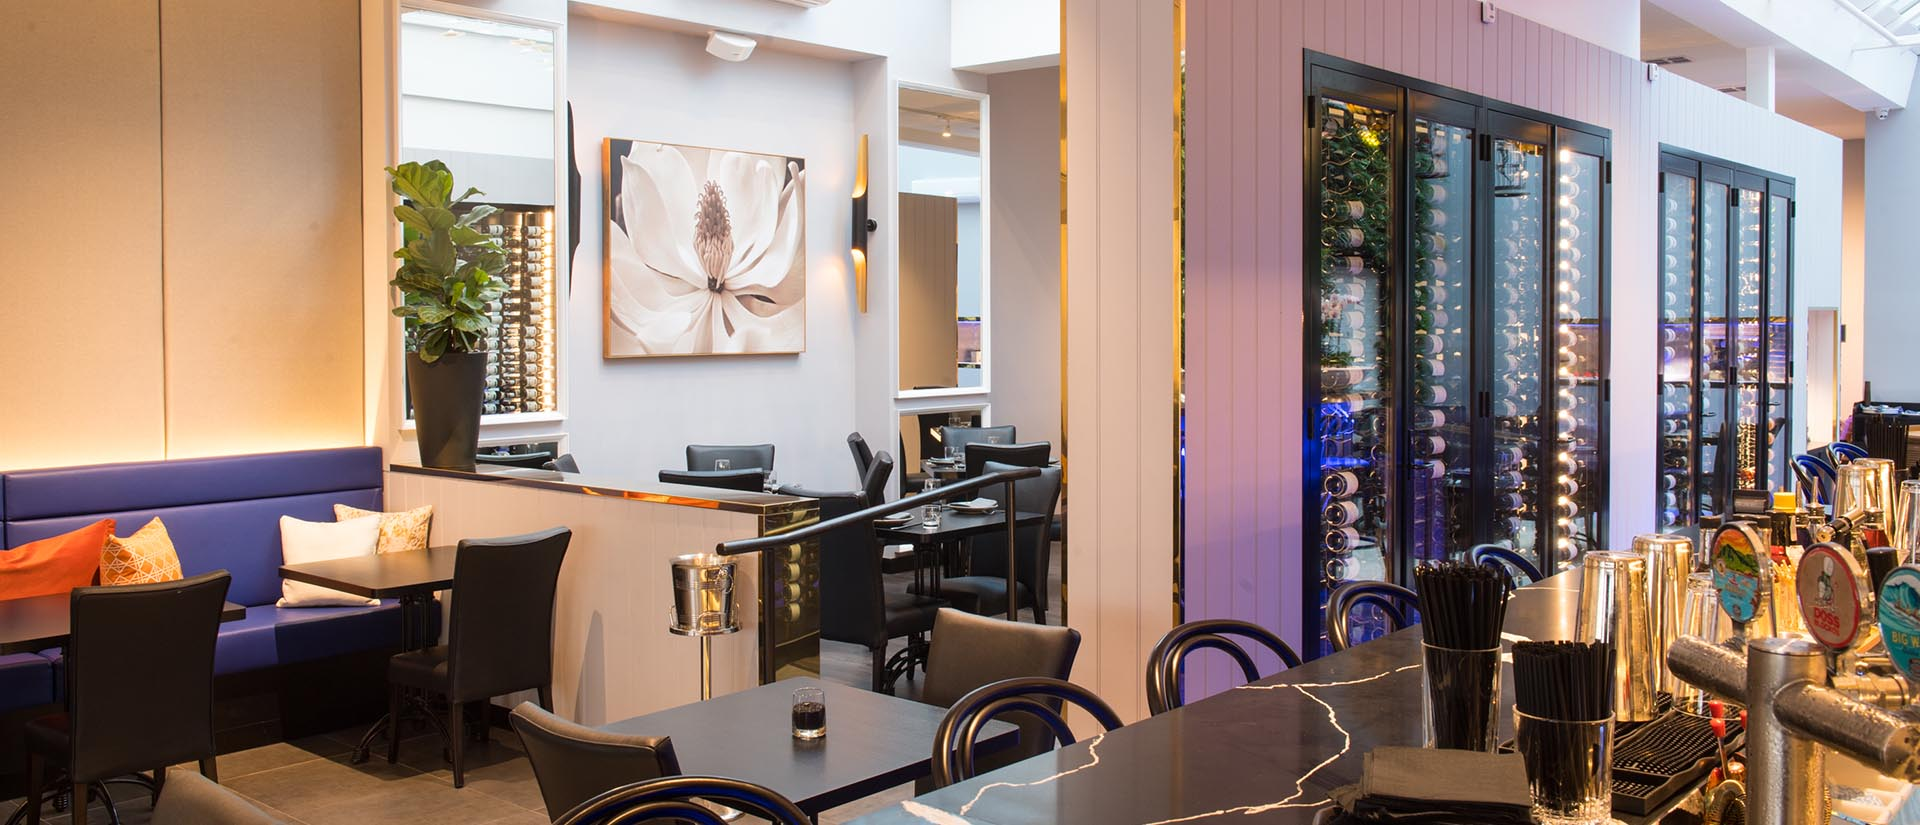 Projects-Restaurant_Chinacy-8